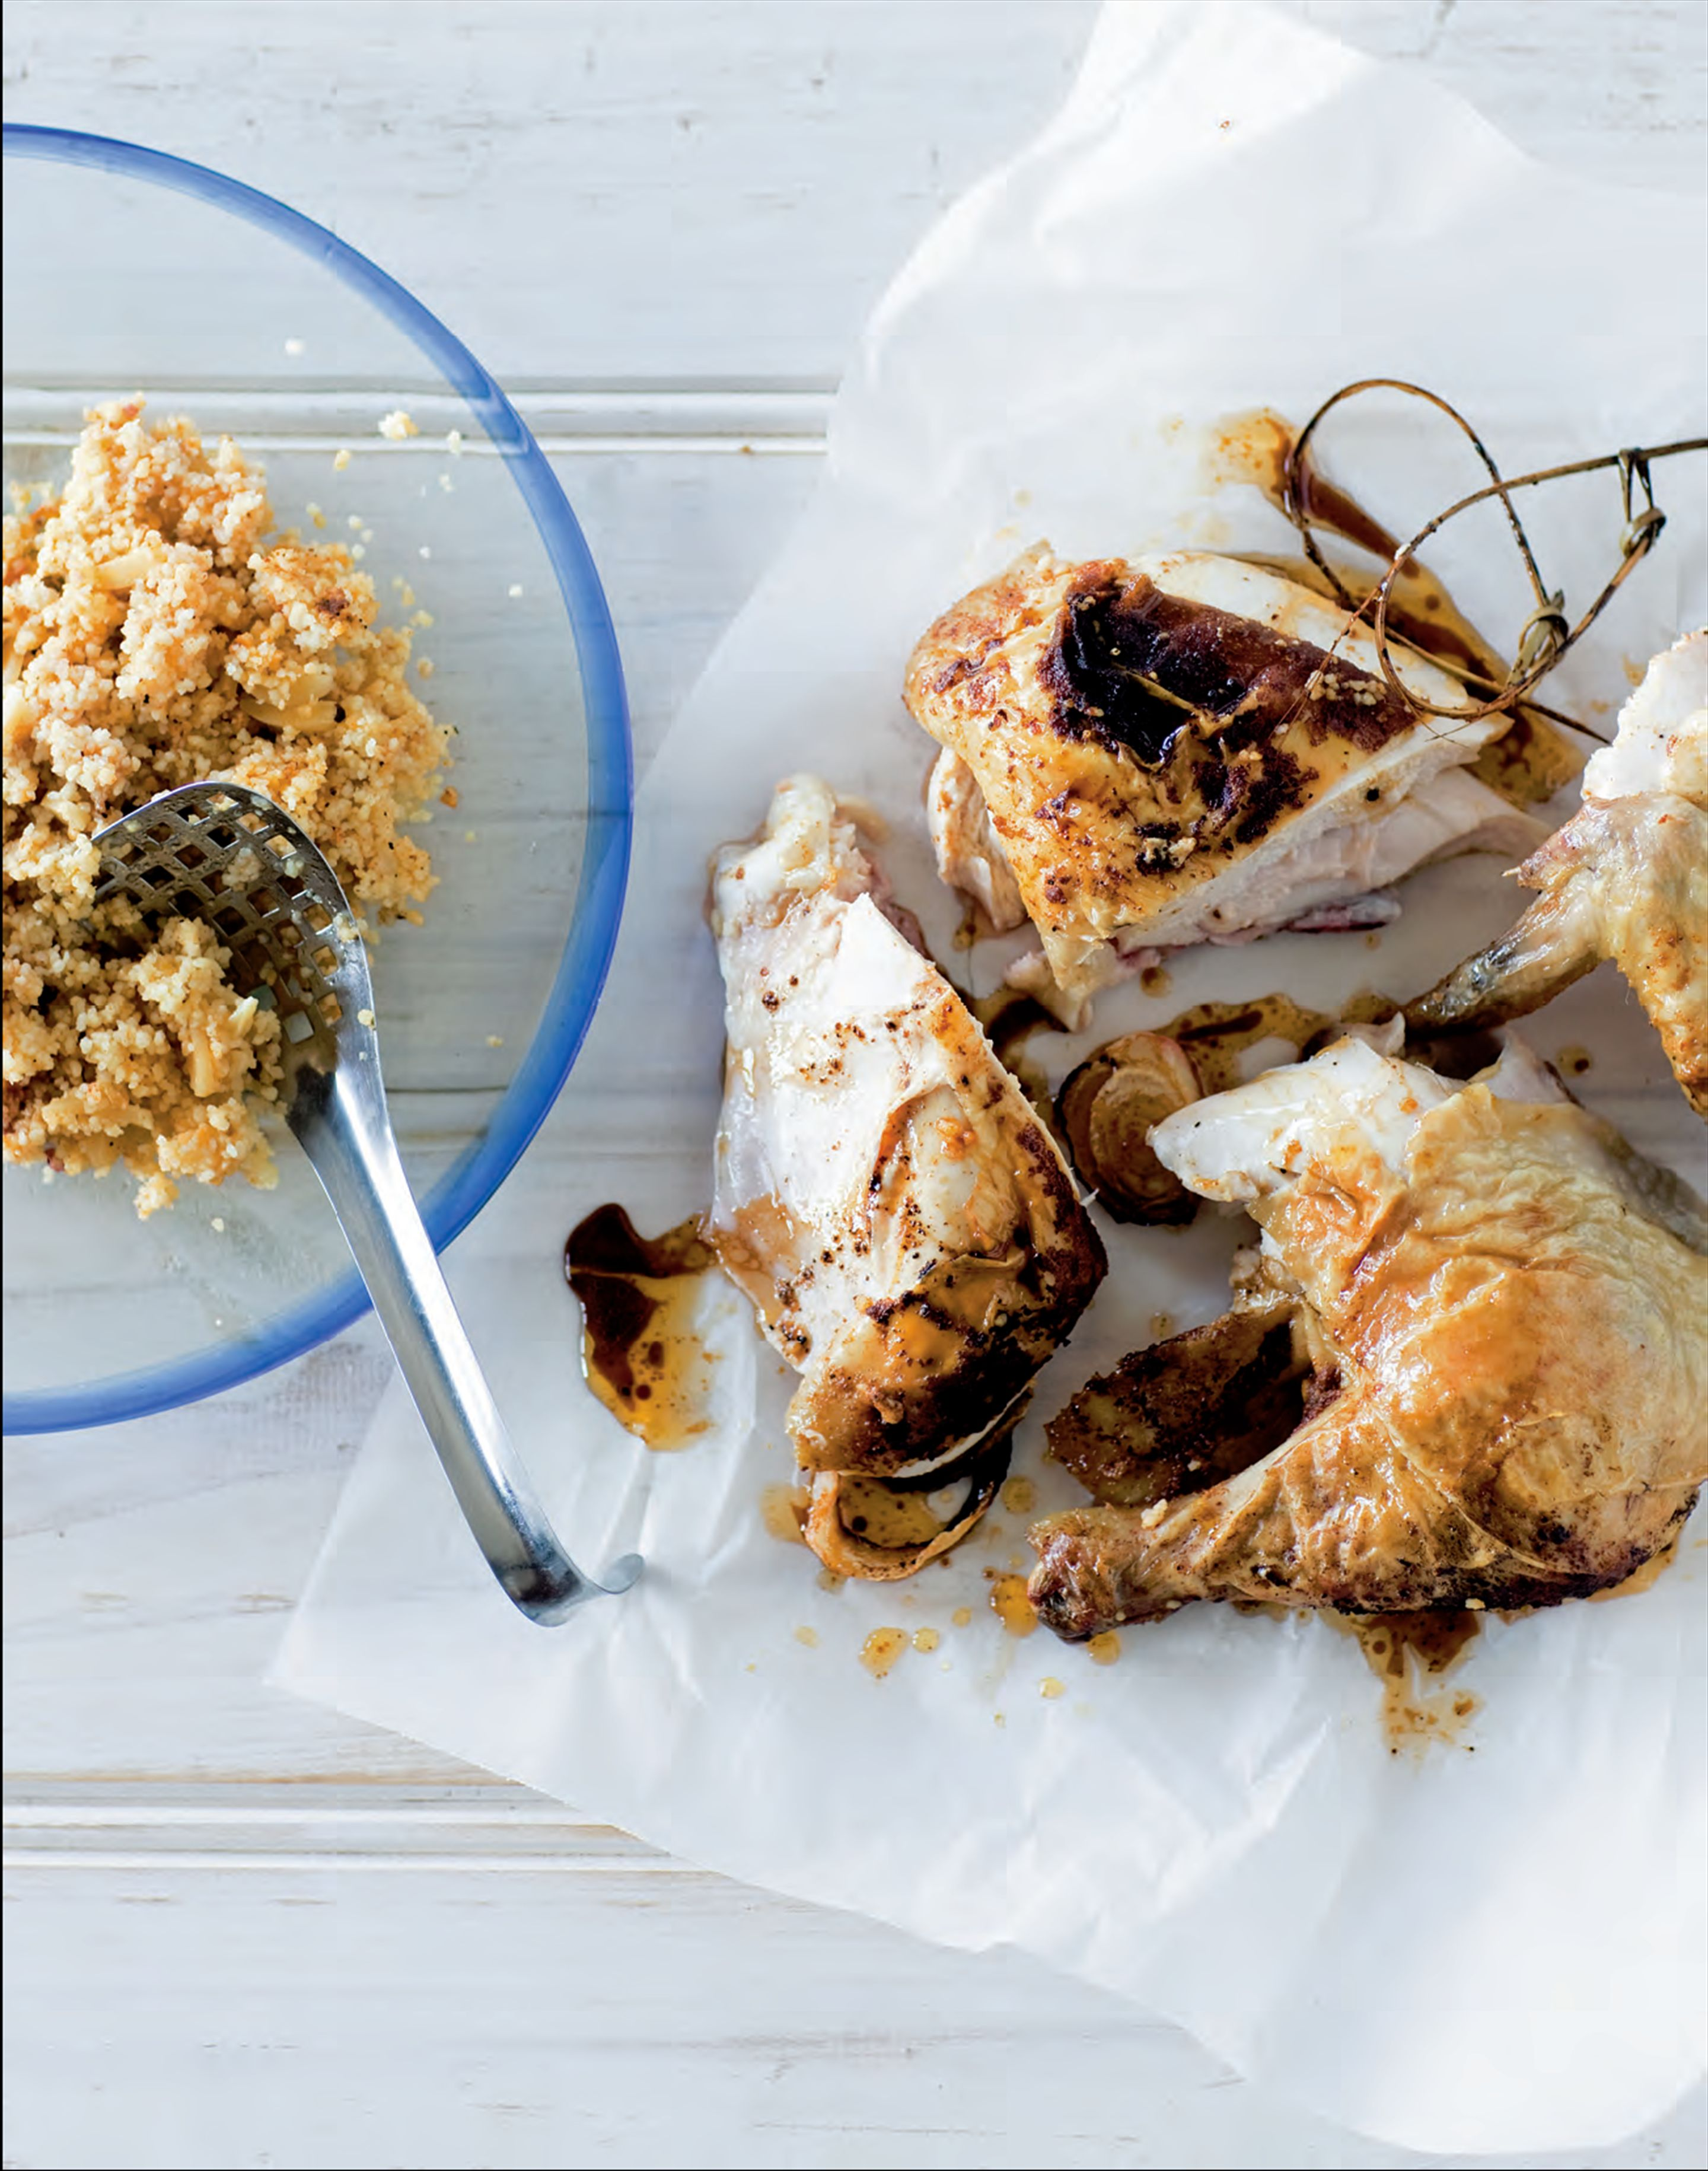 Roast chicken with preserved lemon stuffing